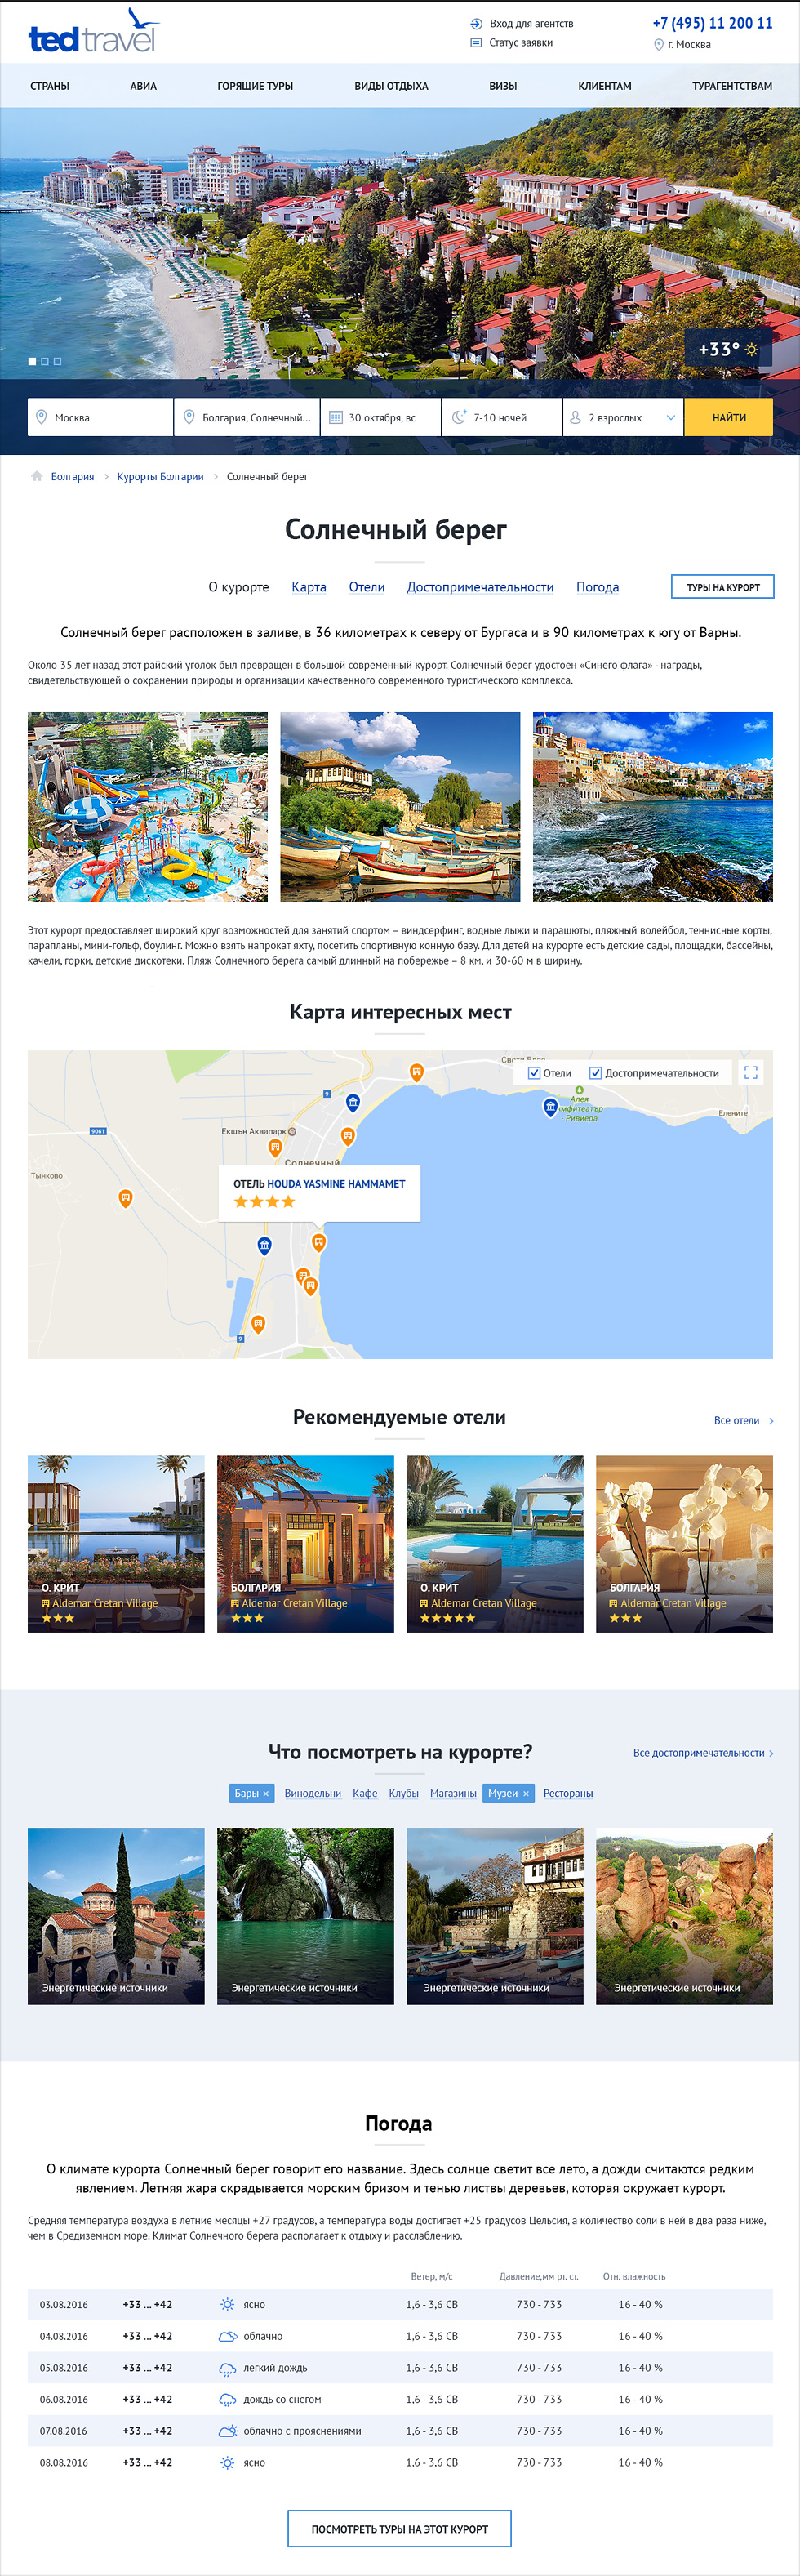 Описание курорта на сайте ted.travel